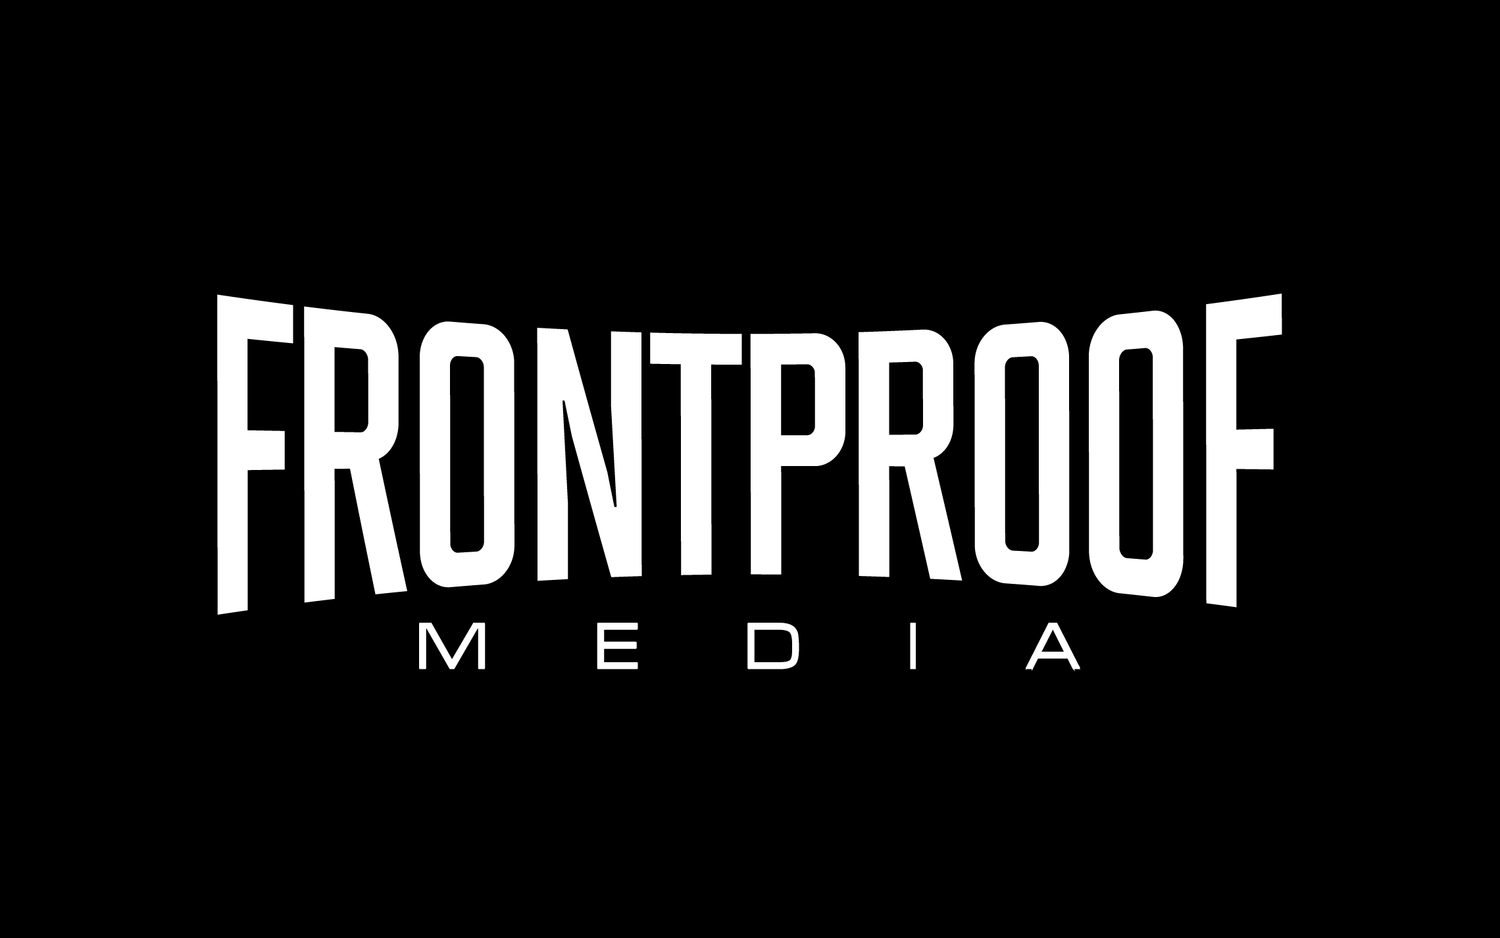 Boxing News, MMA News, Results, Interviews, and Expert Opinion | Frontproof Media